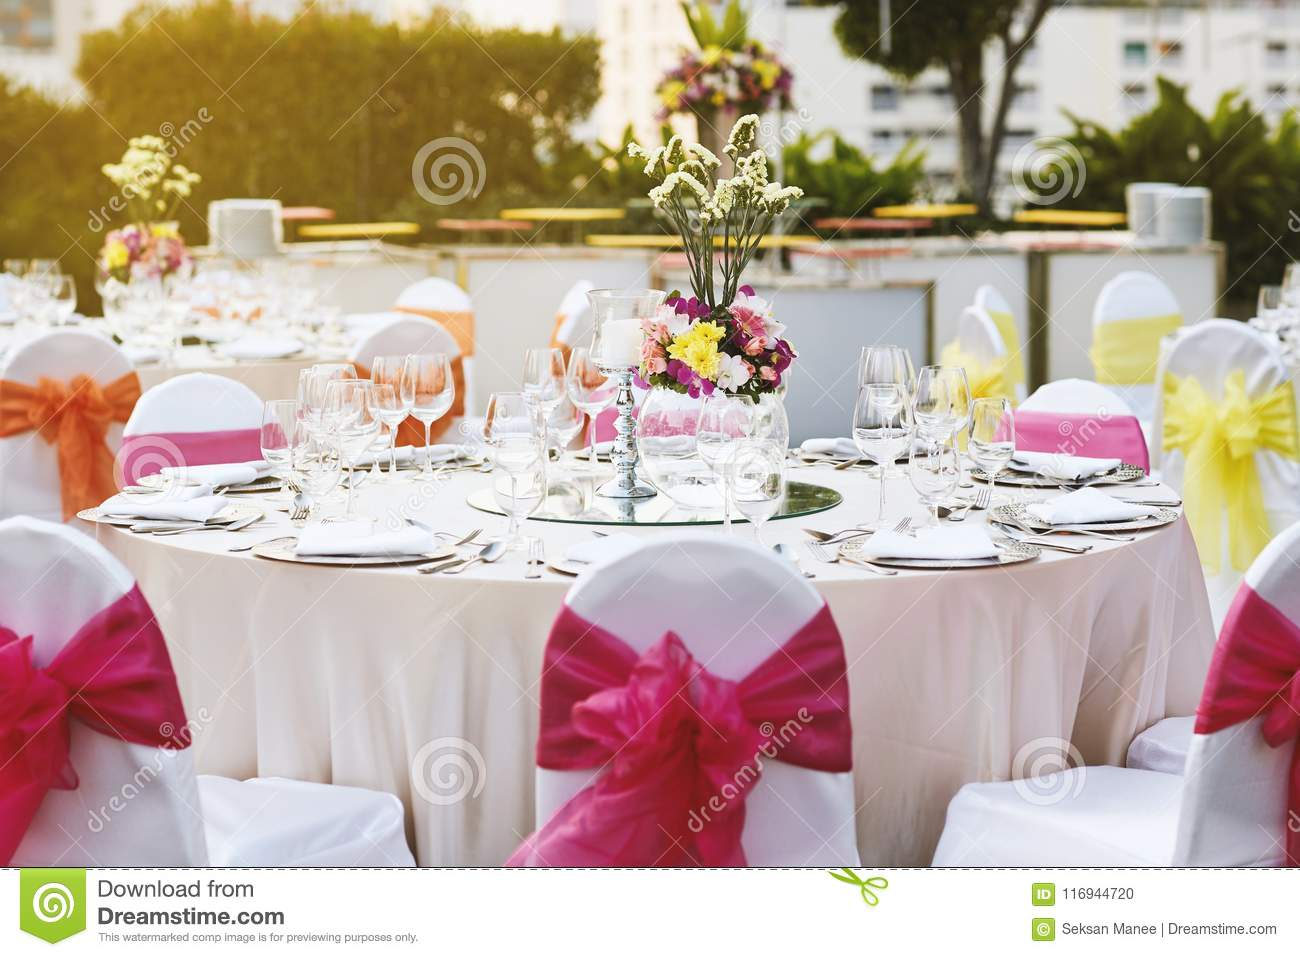 Wedding Reception Dinner Table Setting With Flower Decoration And